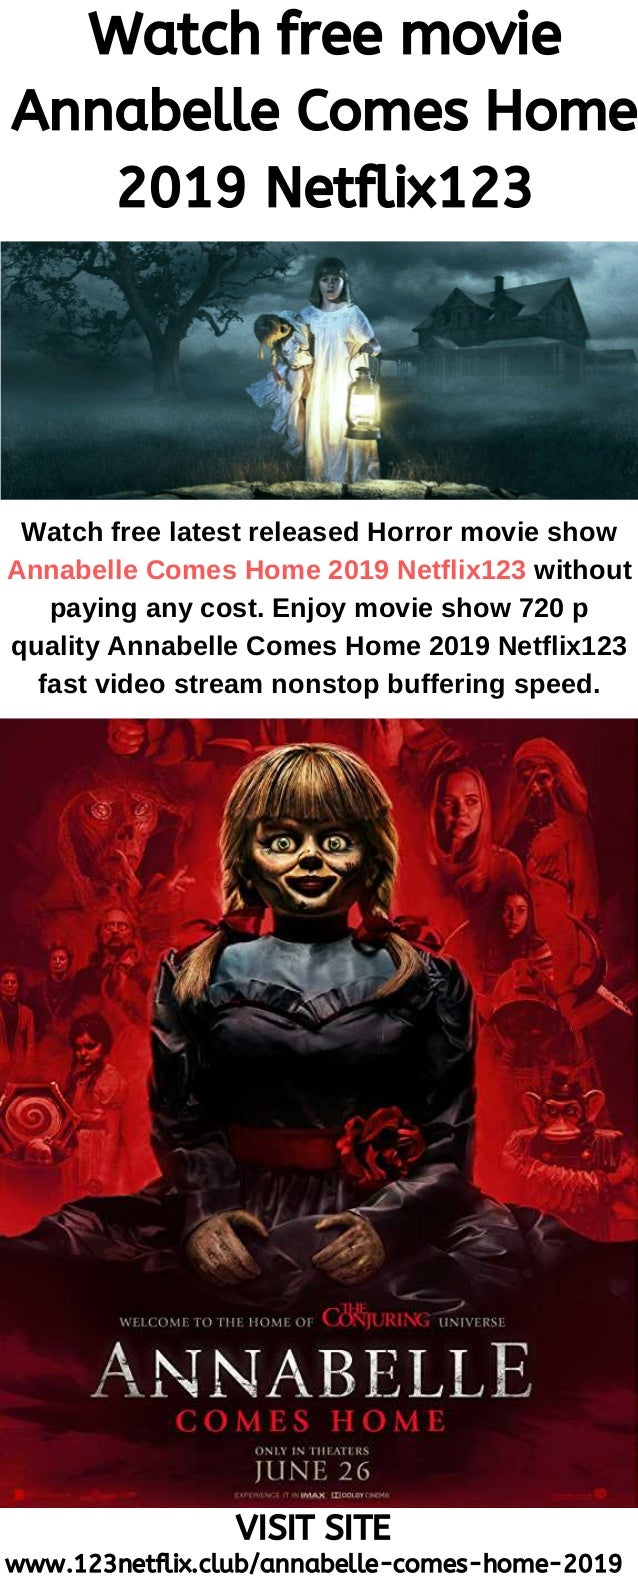 Watch Free Movie Annabelle Comes Home 2019 123netflix